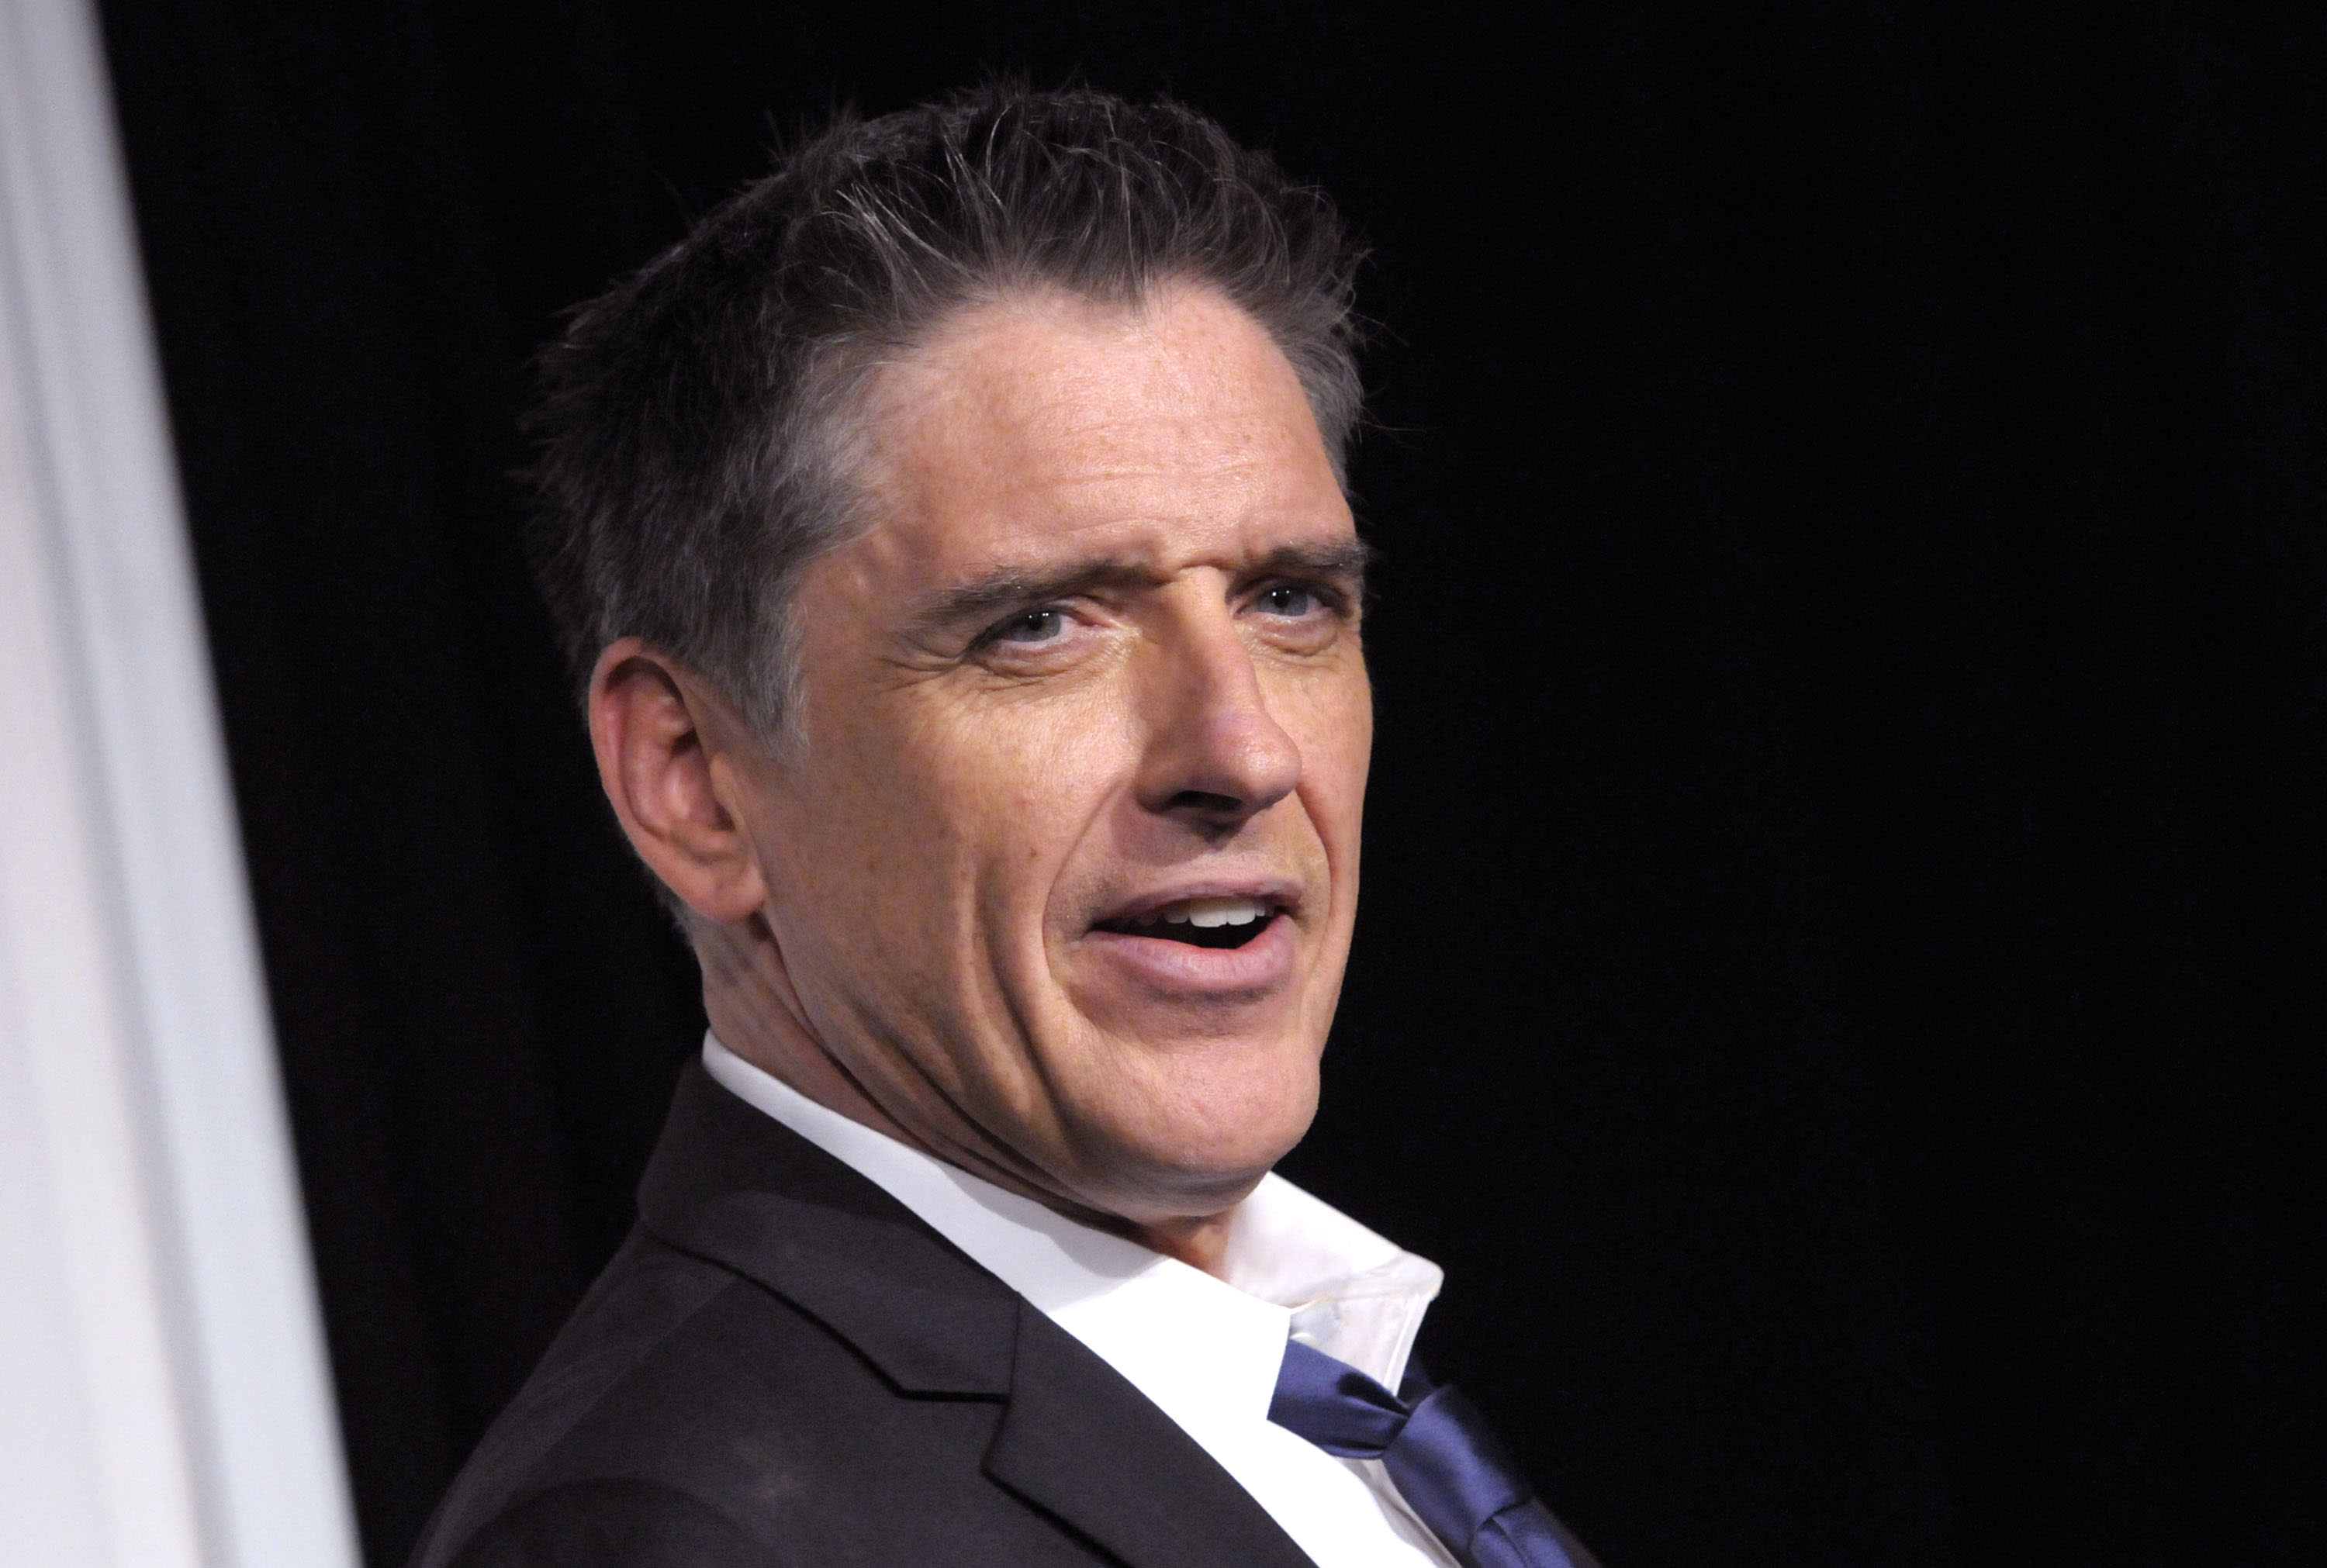 Craig Ferguson says good night as 'Late Late Show' host